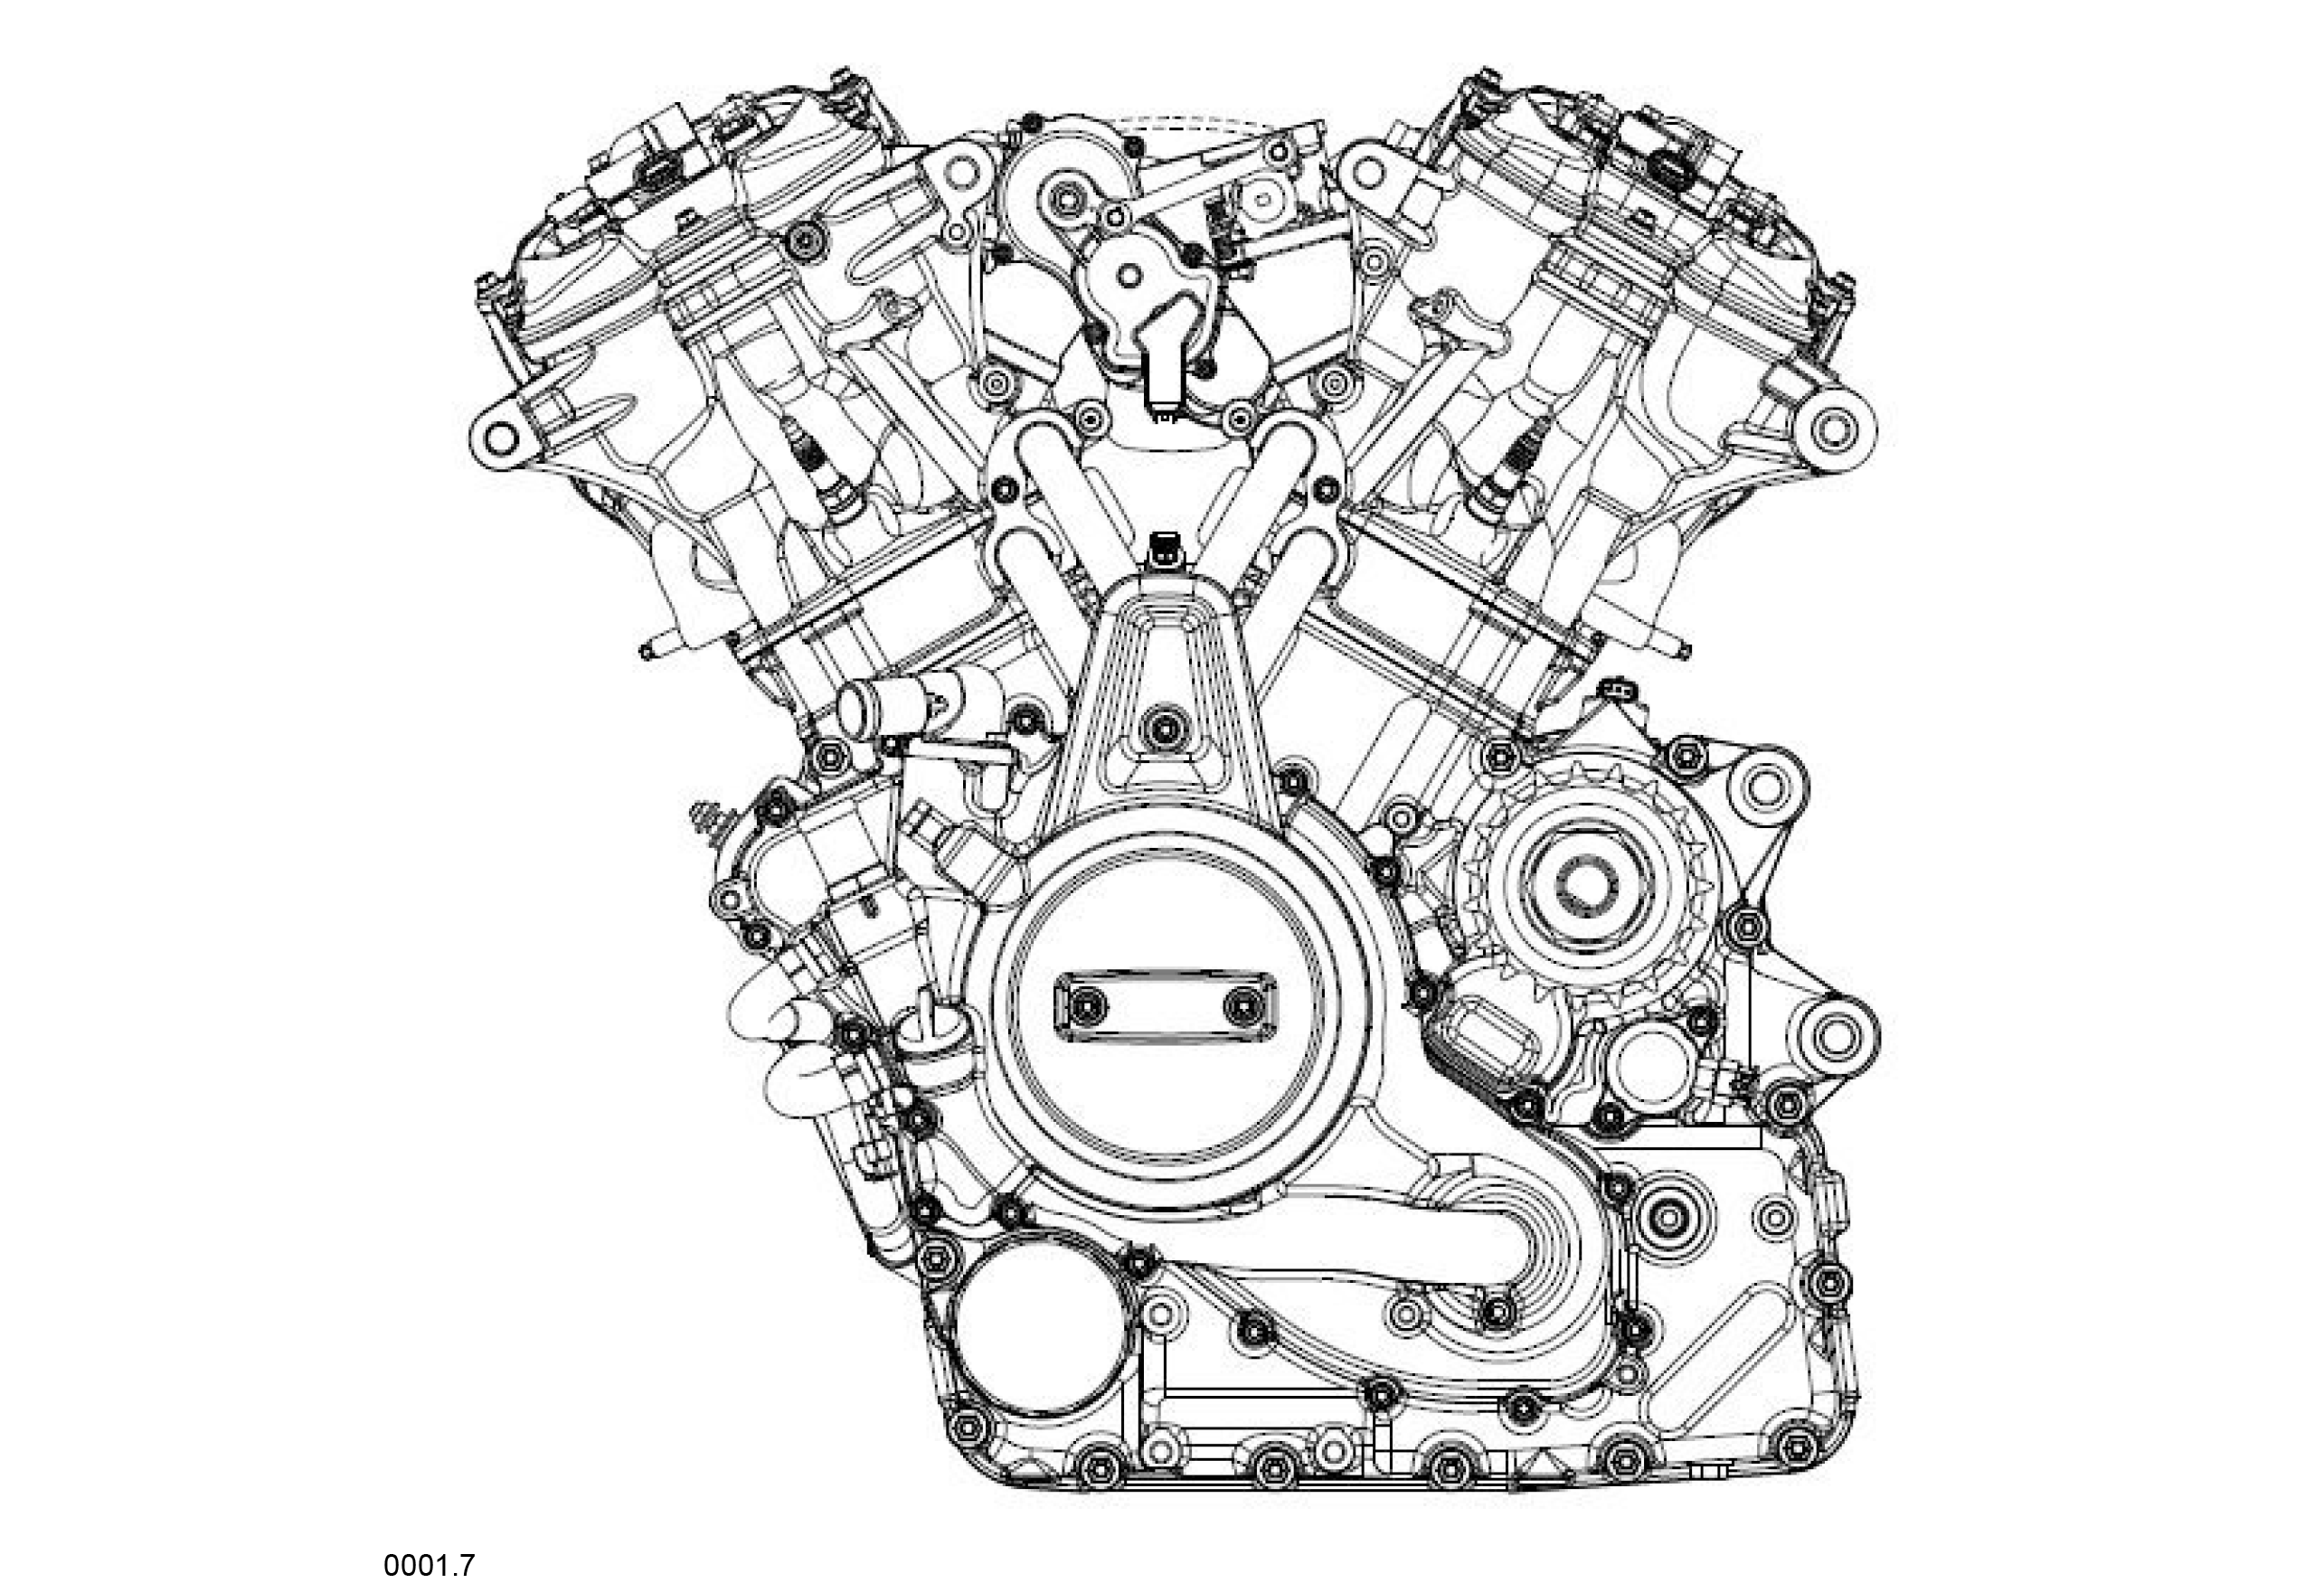 new harley-davidson v-twin engine design revealed - motorcycle.com 2004 harley v twin engine diagram smallv twin engine diagram